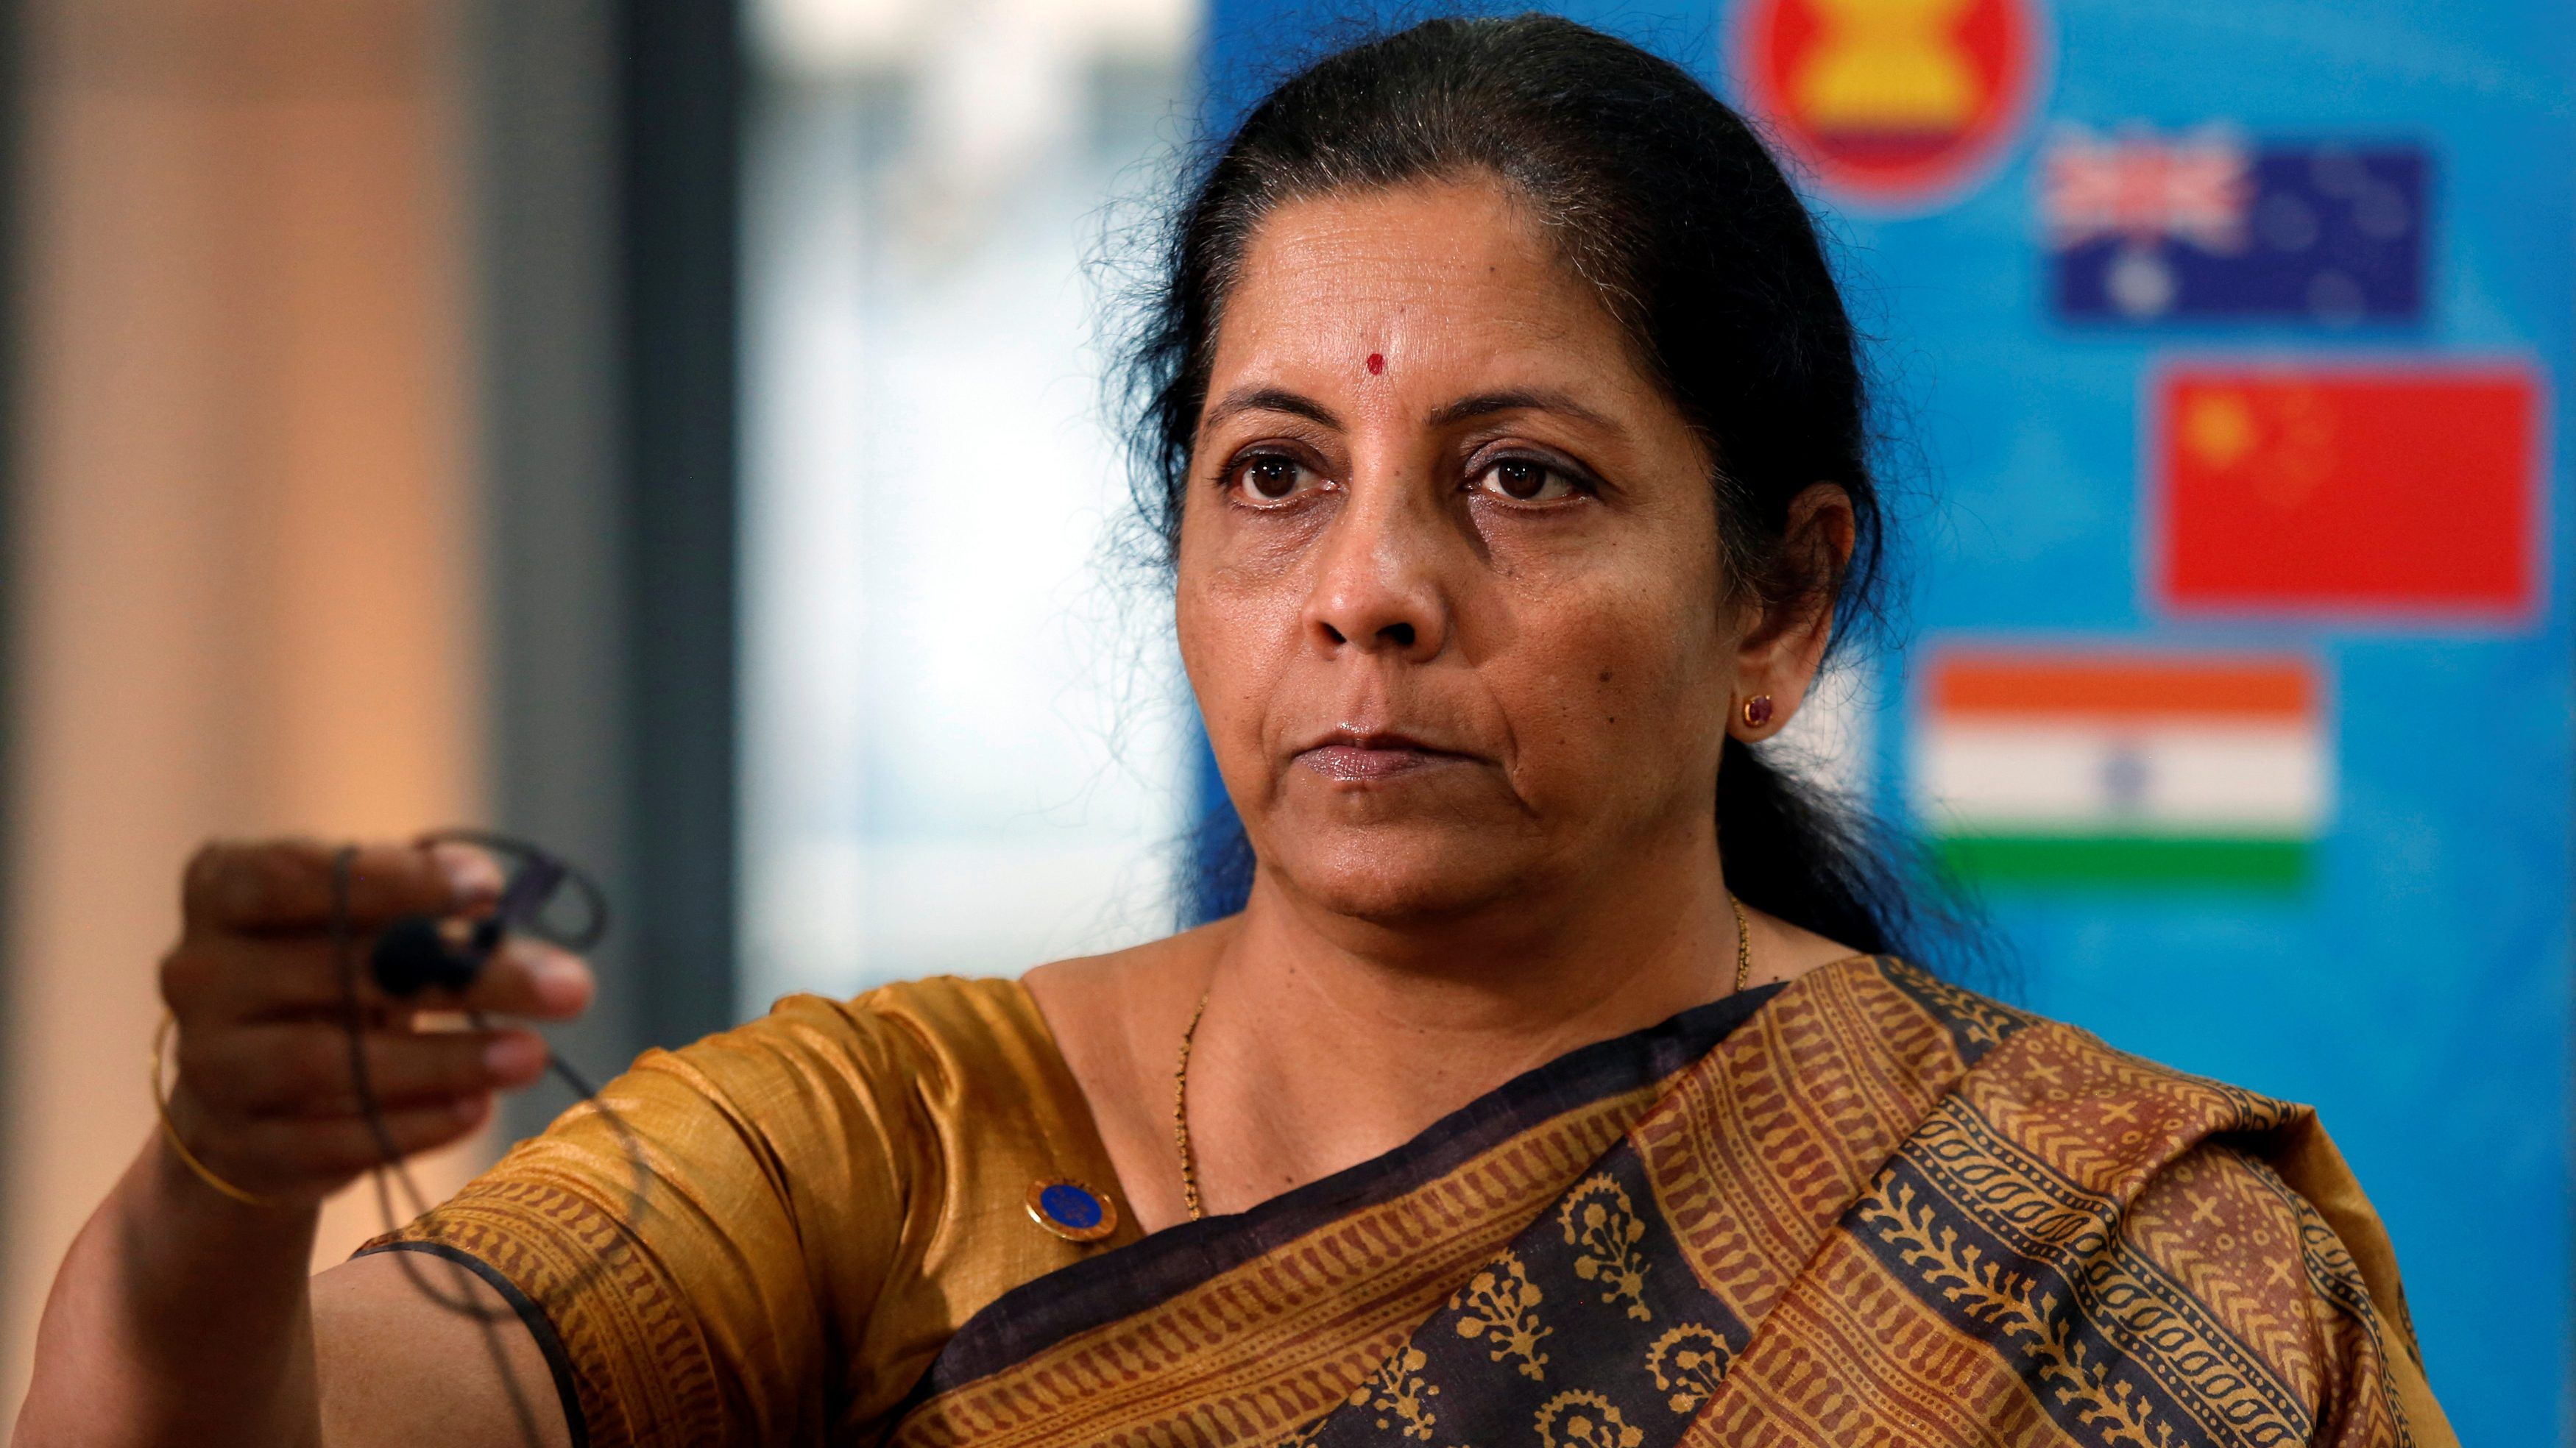 India's new finance minister Nirmala Sitharaman will represent the country at G20 tax discussions in Tokyo.